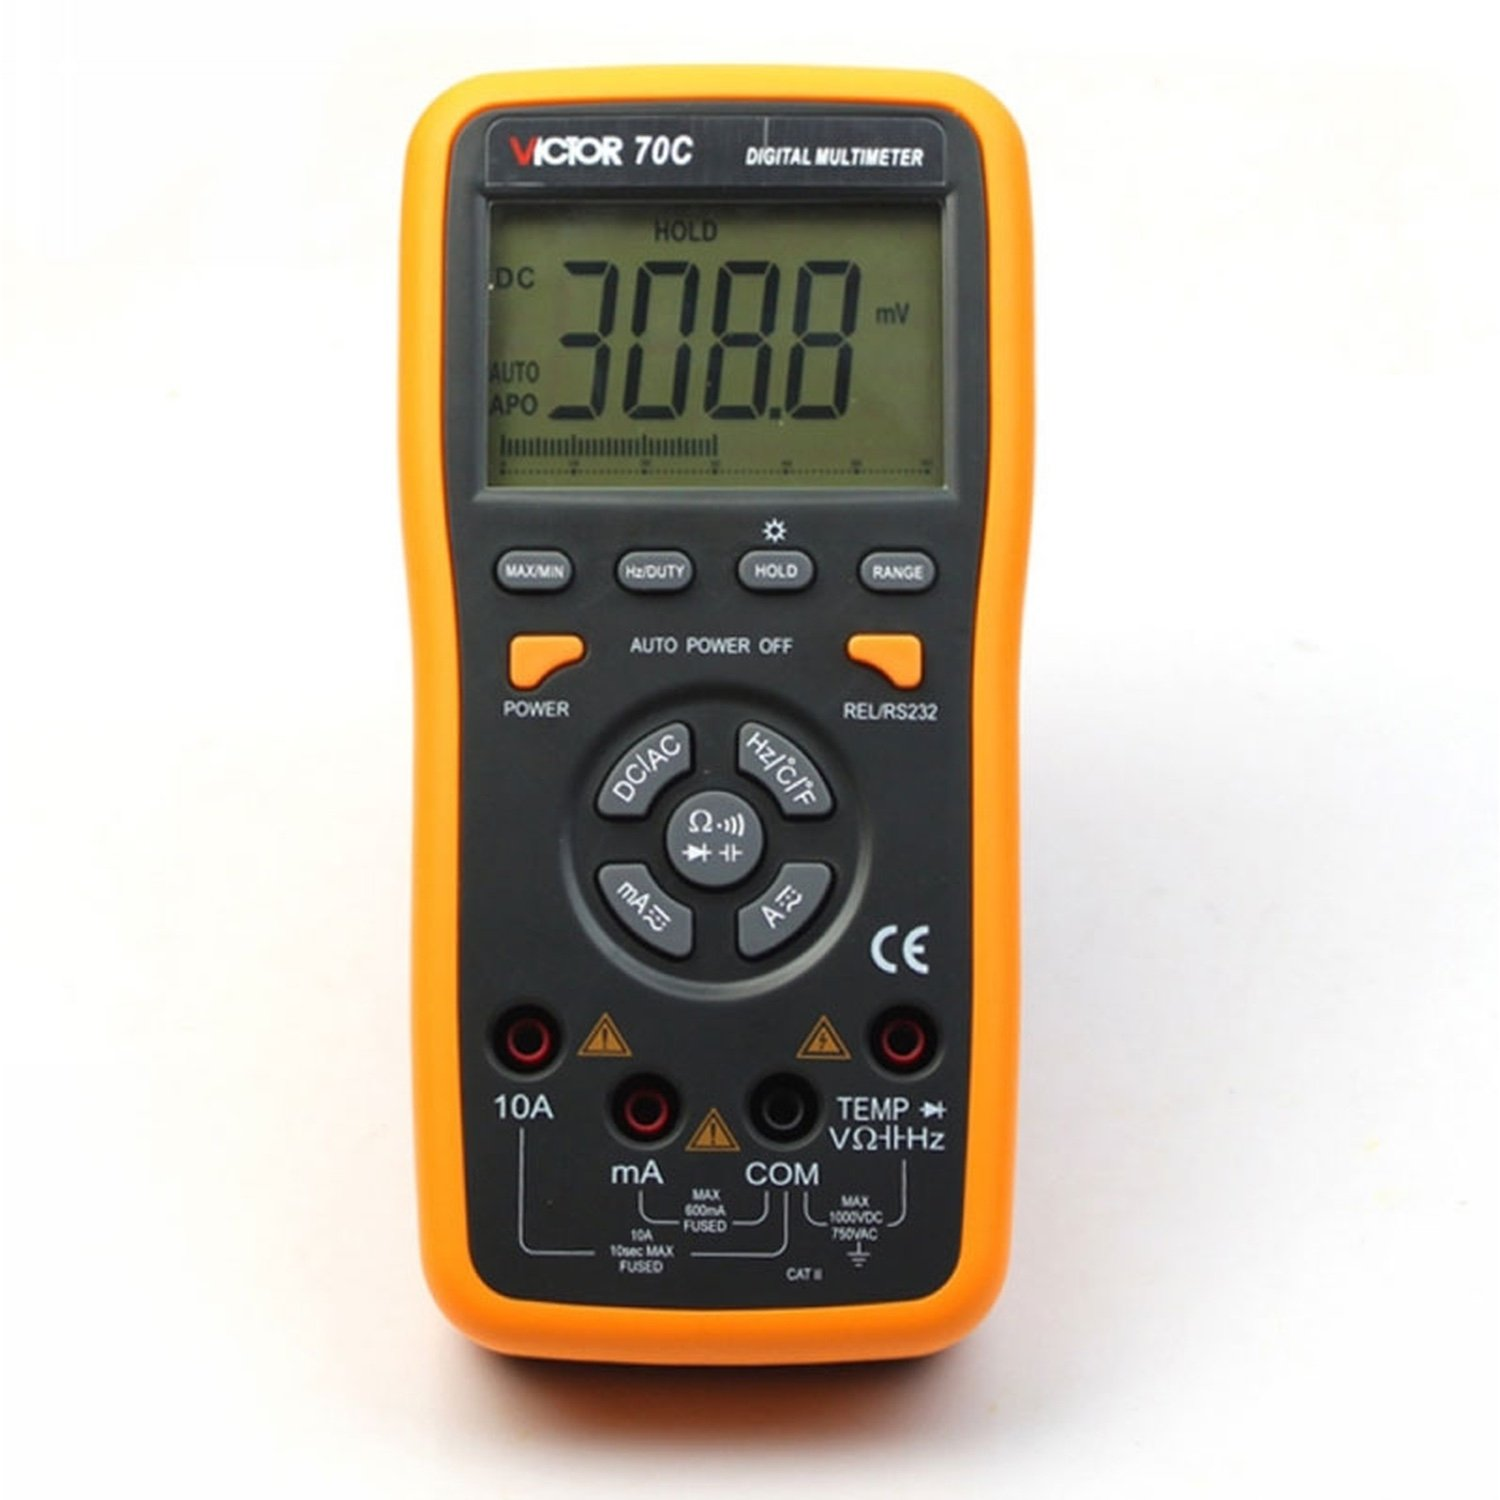 VICTOR 70C 3 5/6 Key Touch Digital Multimeter Autoranging LCD with usb pc connection цена в Москве и Питере